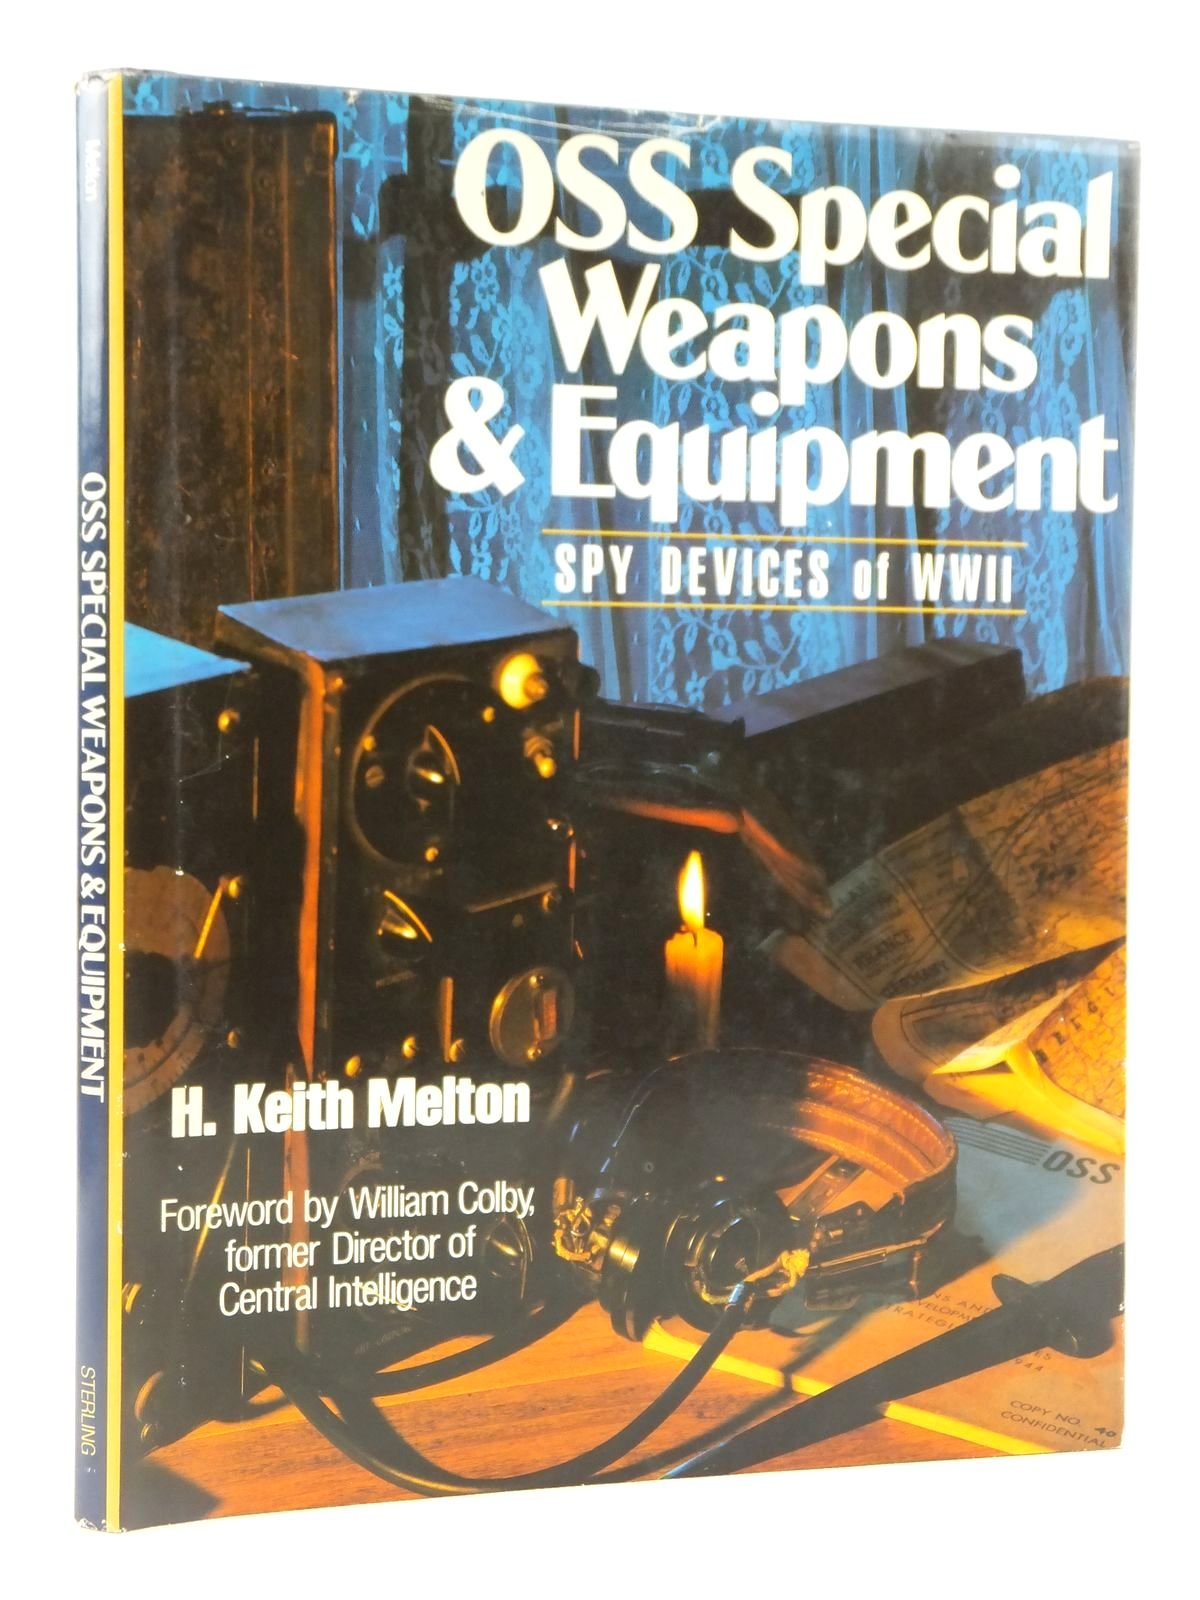 OSS Special Weapons and Equipment: Spy Devices of WWII